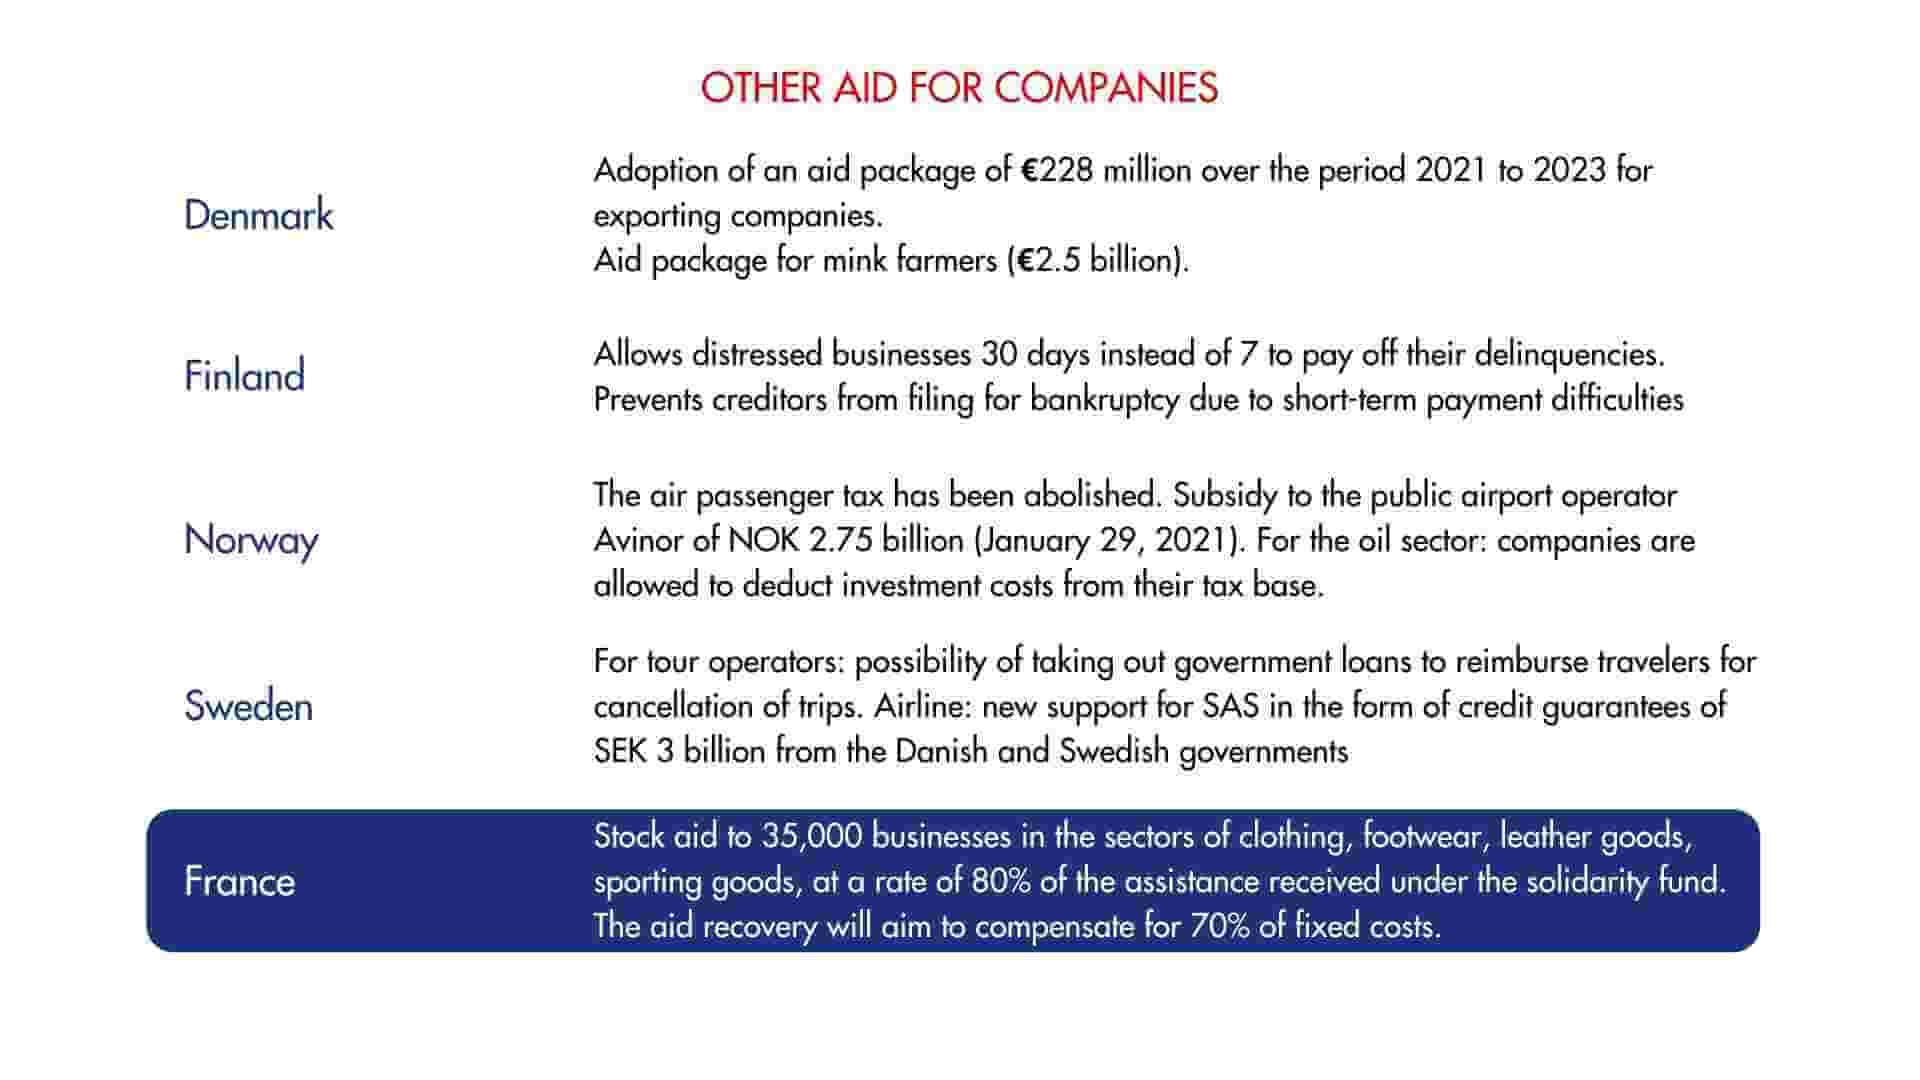 Support measure for companies agains COVID-19 in France and the Nordics - 5